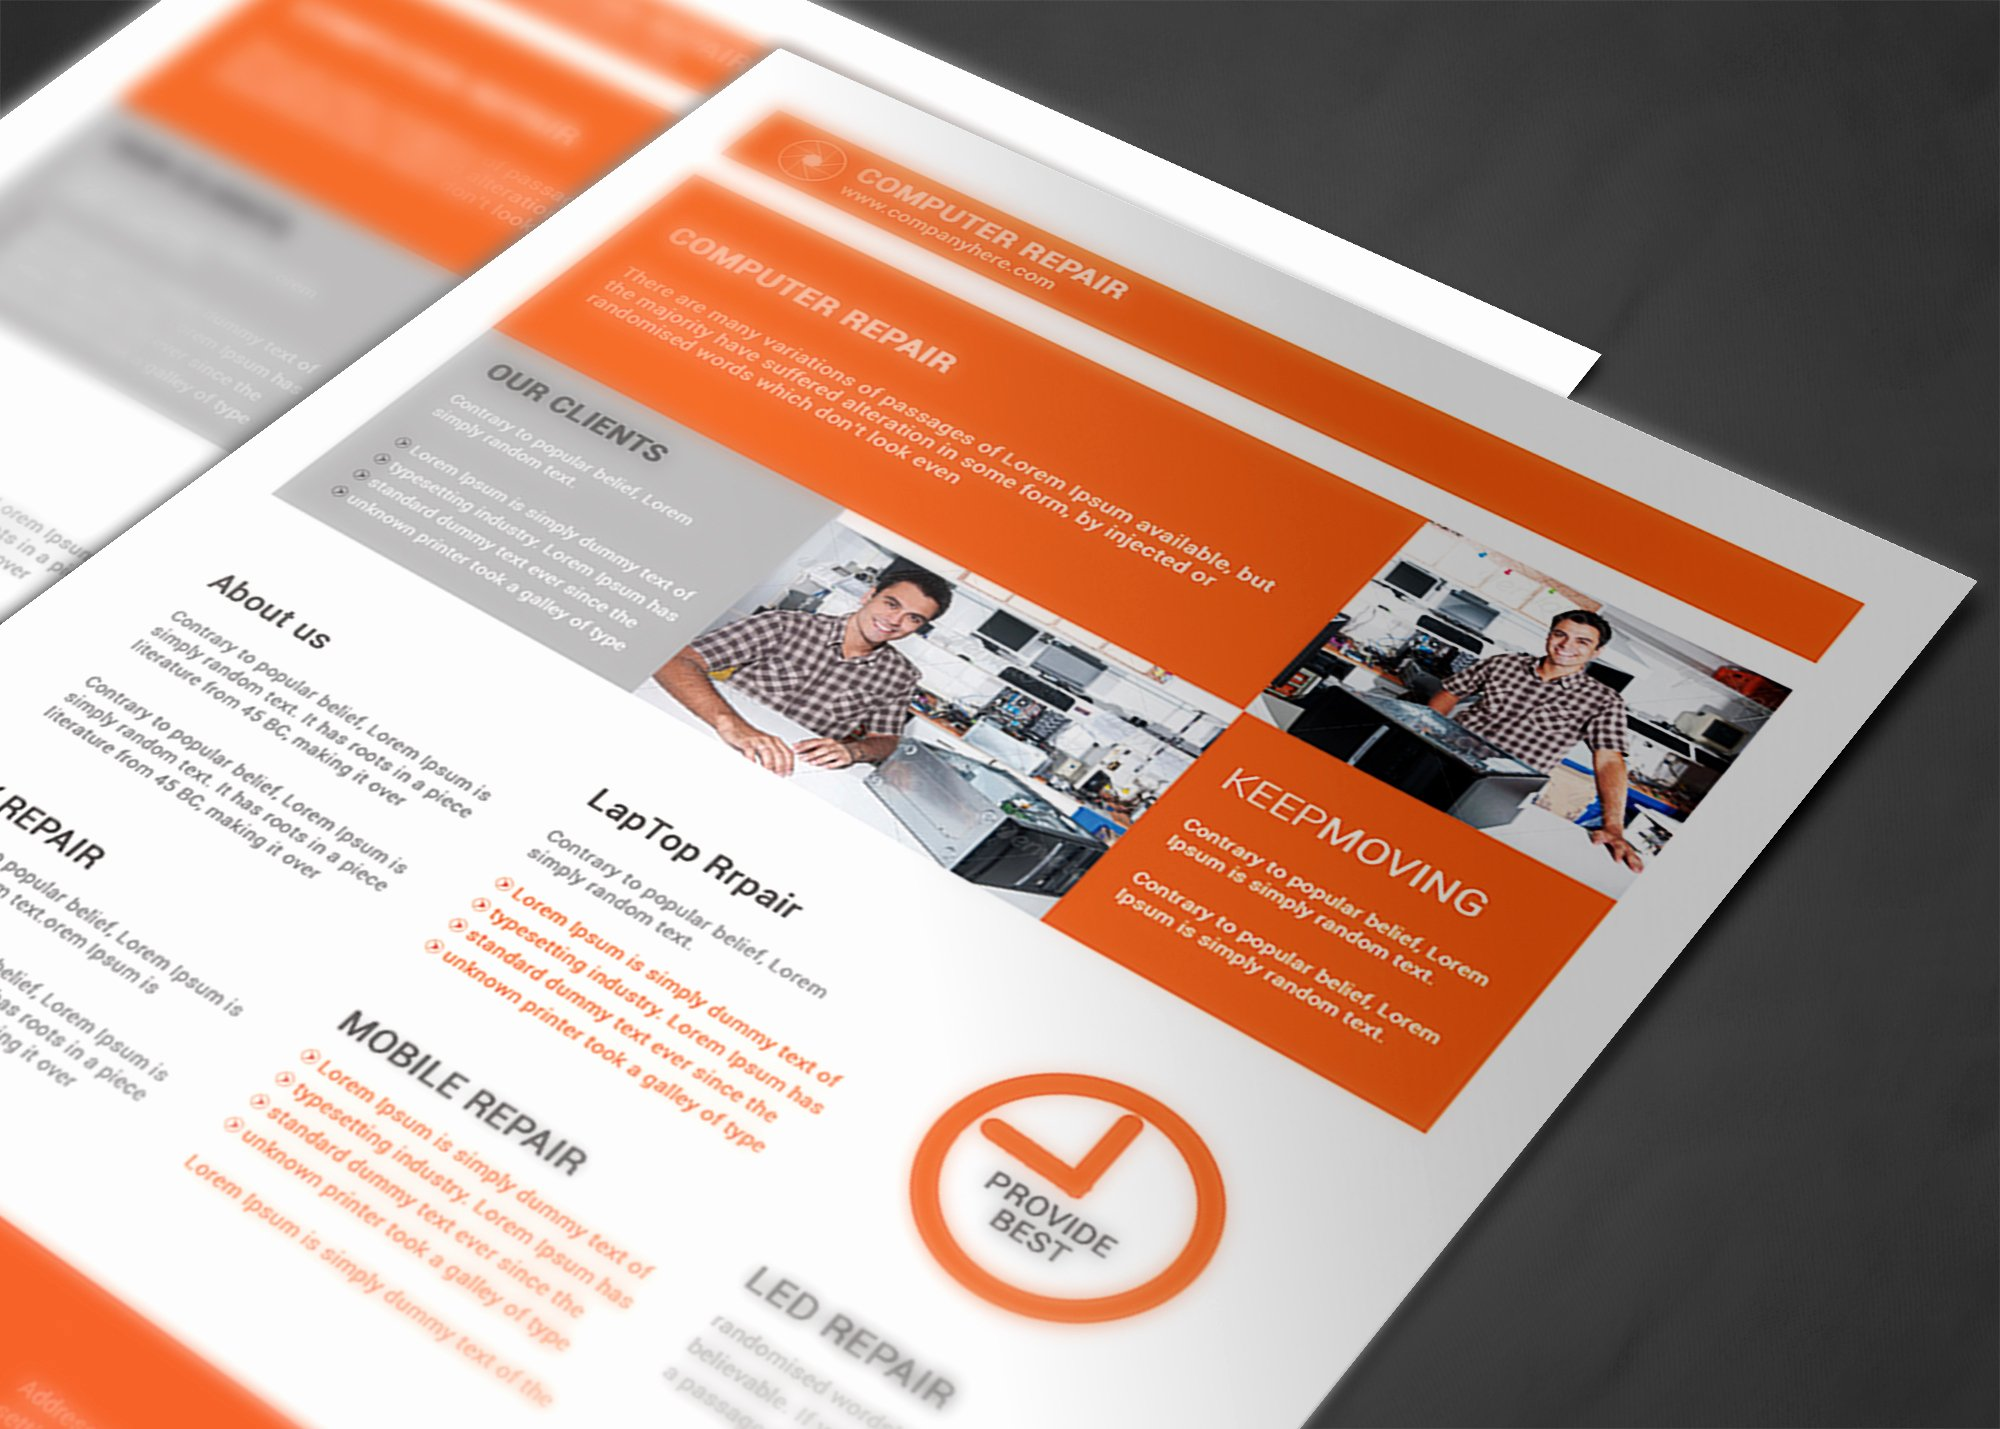 Computer Repair Flyer Template Elegant Puter Repair Flyer Template Flyer Templates On